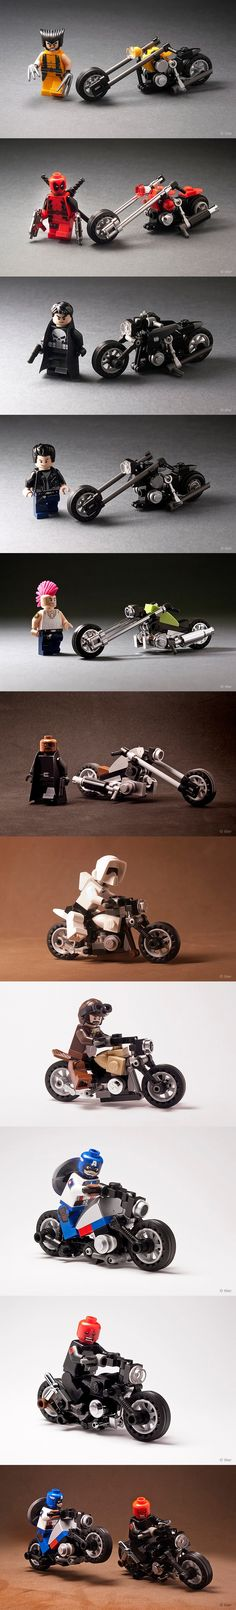 LEGO Motorcycles & Mini Figures